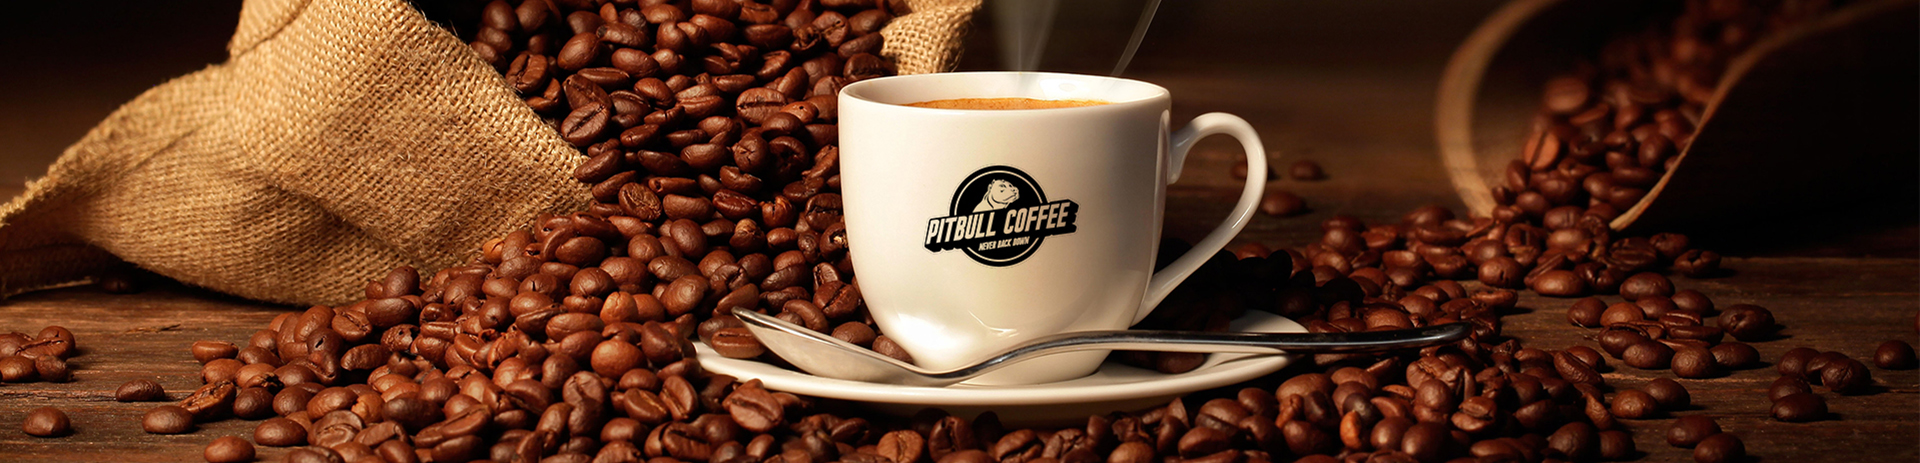 Pitbull Coffee Banner